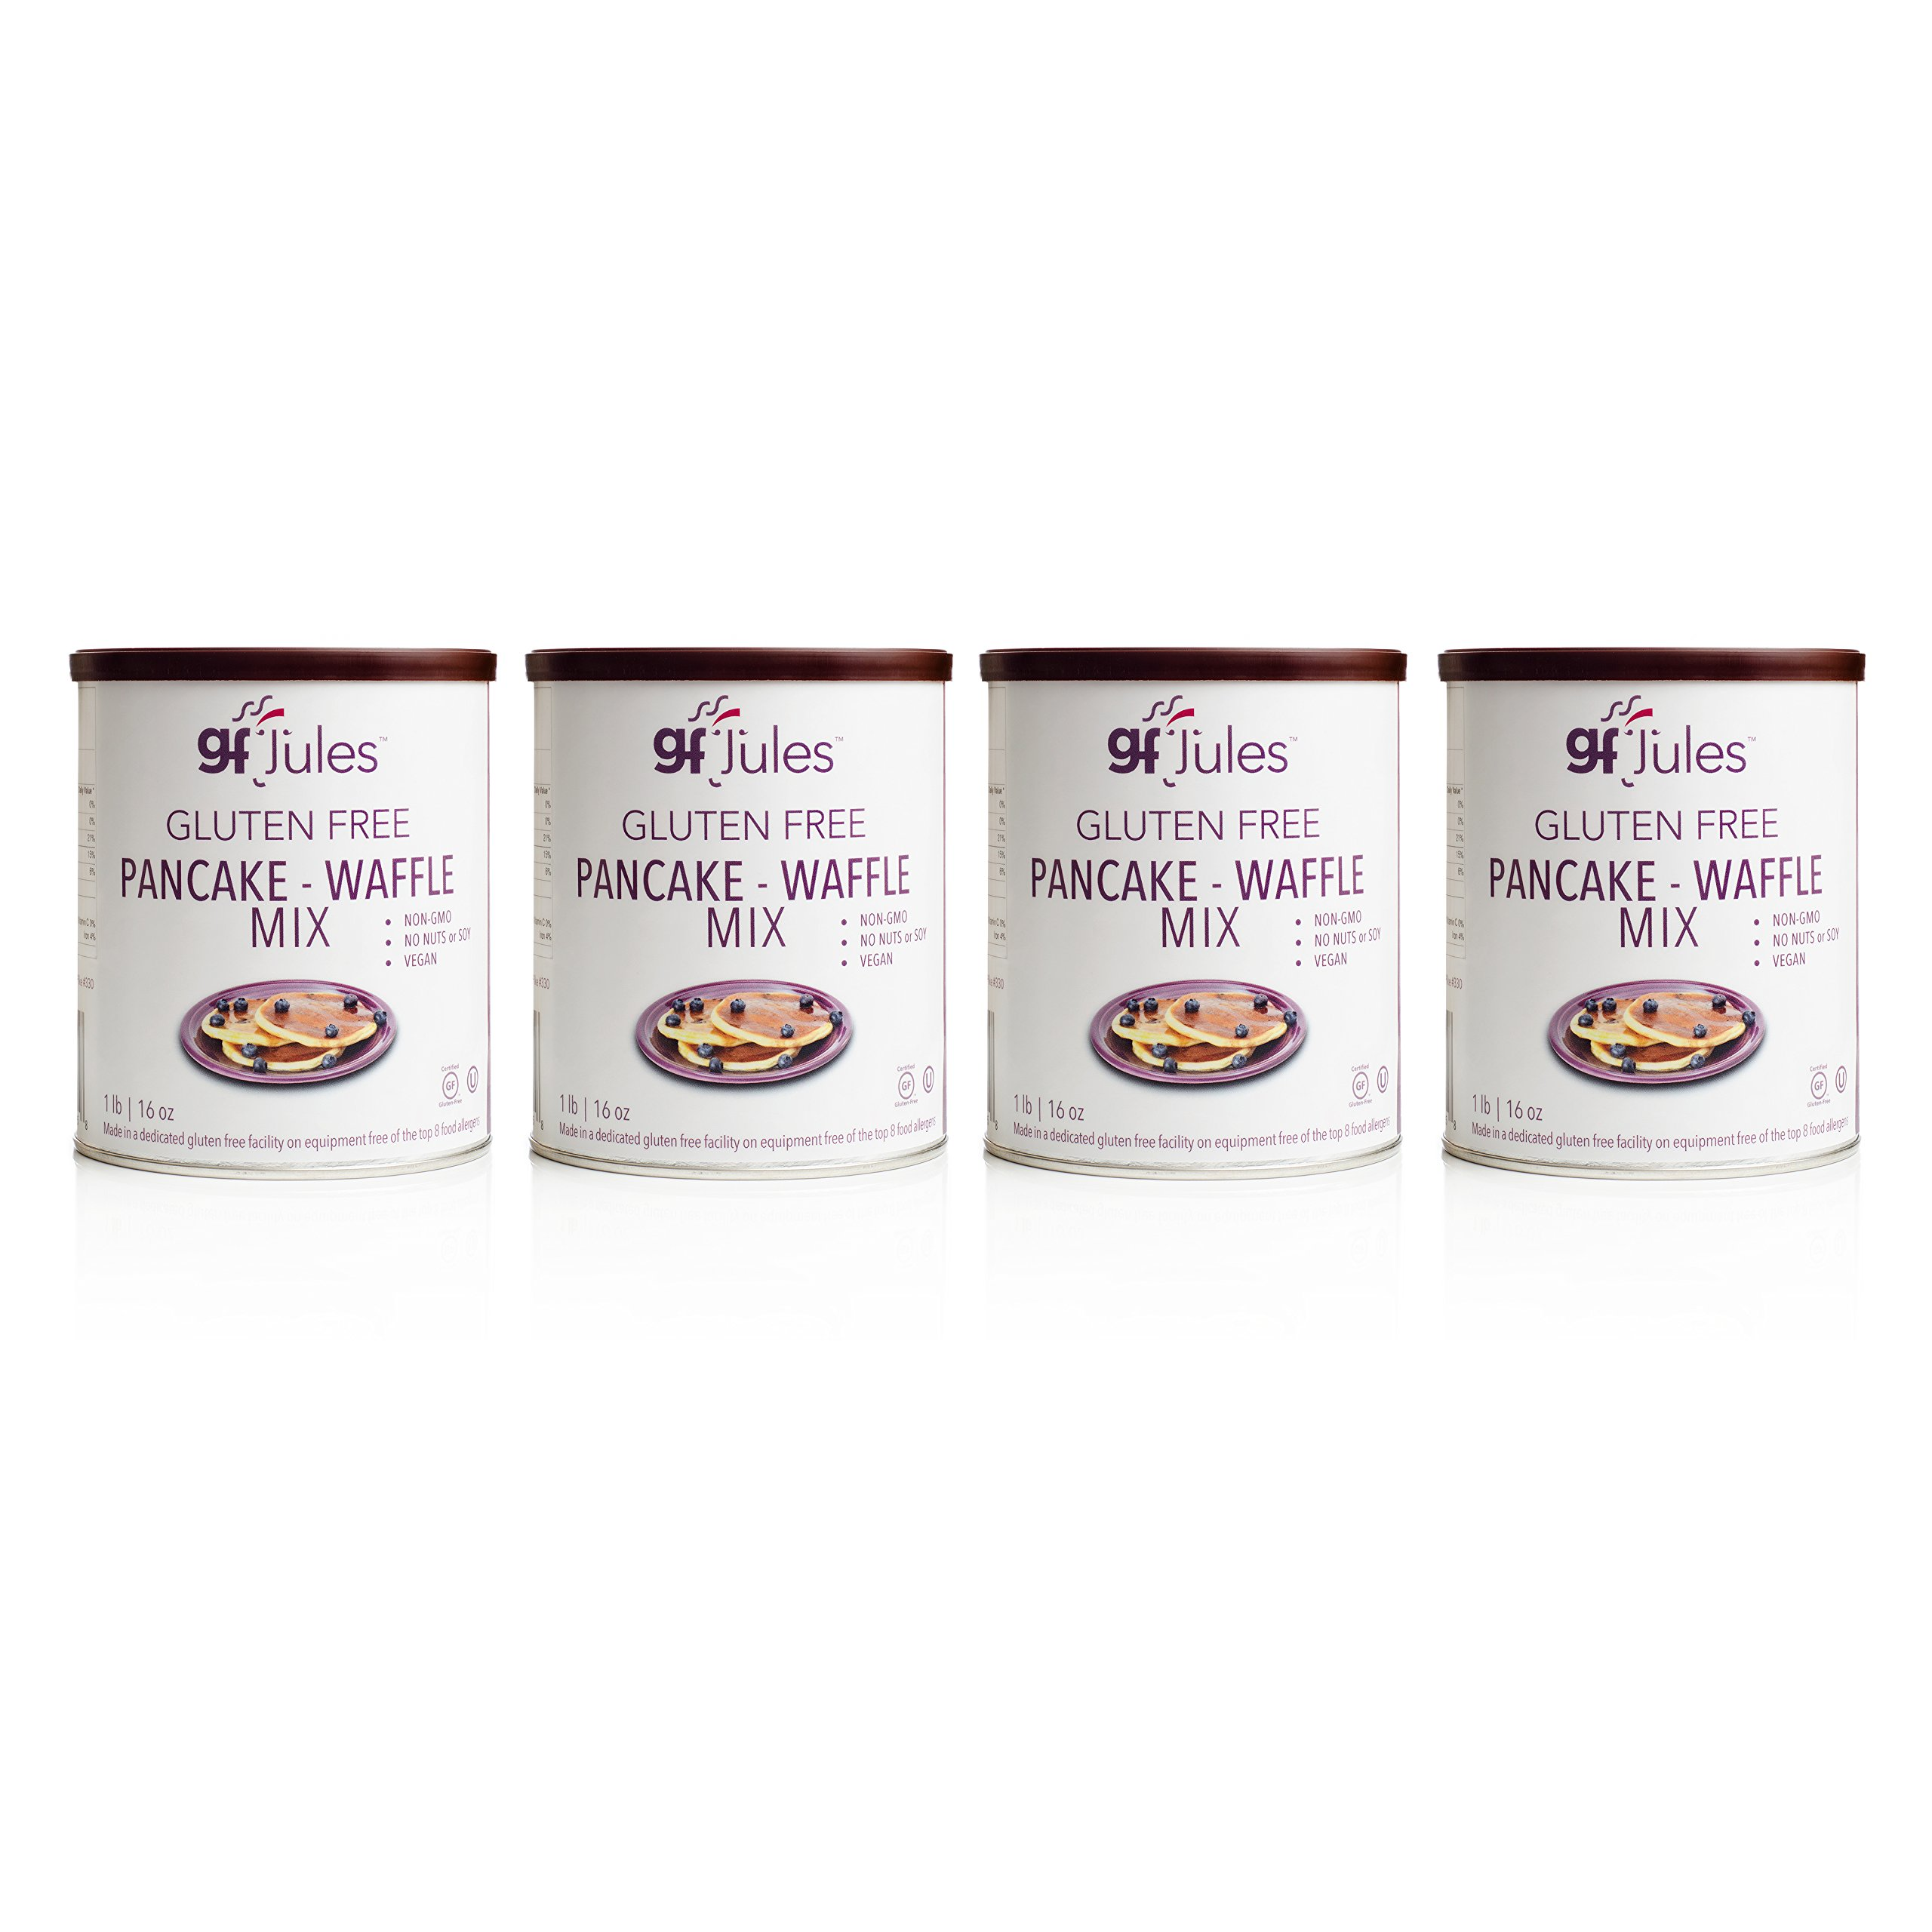 gfJules Gluten Free Pancake & Waffle Mix - Voted #1 by GF Consumers 1 lb, Pack of 4 by gfJules